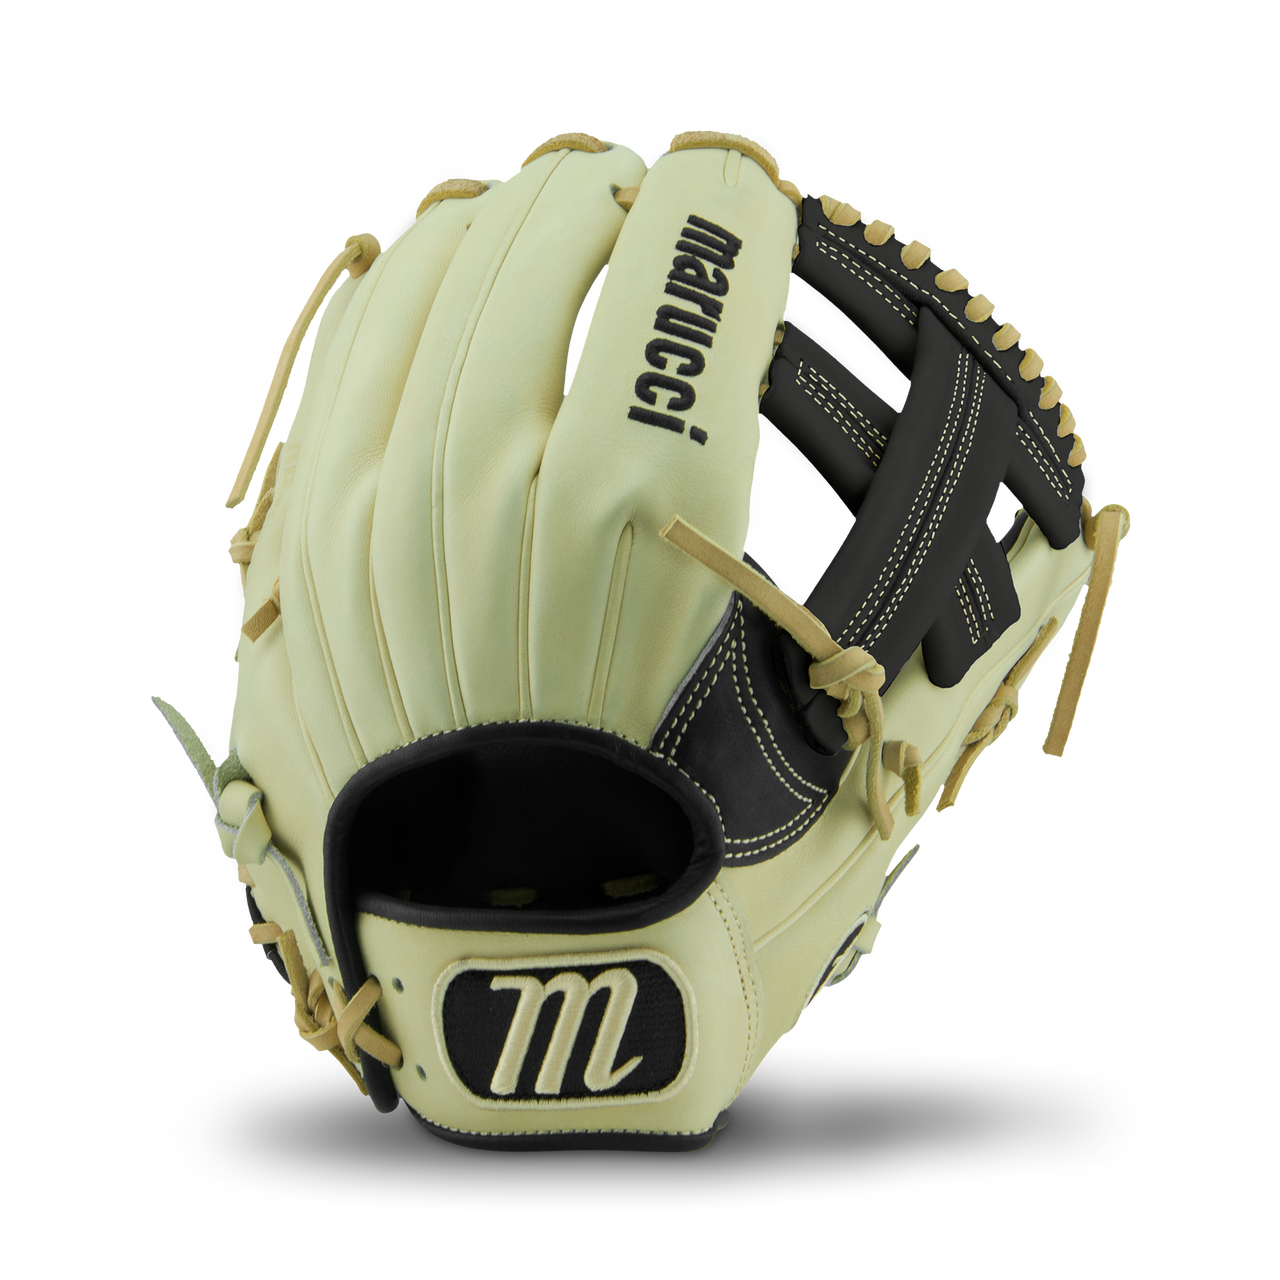 marucci-founders-11-75-single-post-web-baseball-glove-right-hand-throw MFGFS1175SP-RightHandThrow  849817056004 Constructed with premium Japanese kip leather and an understanding of the